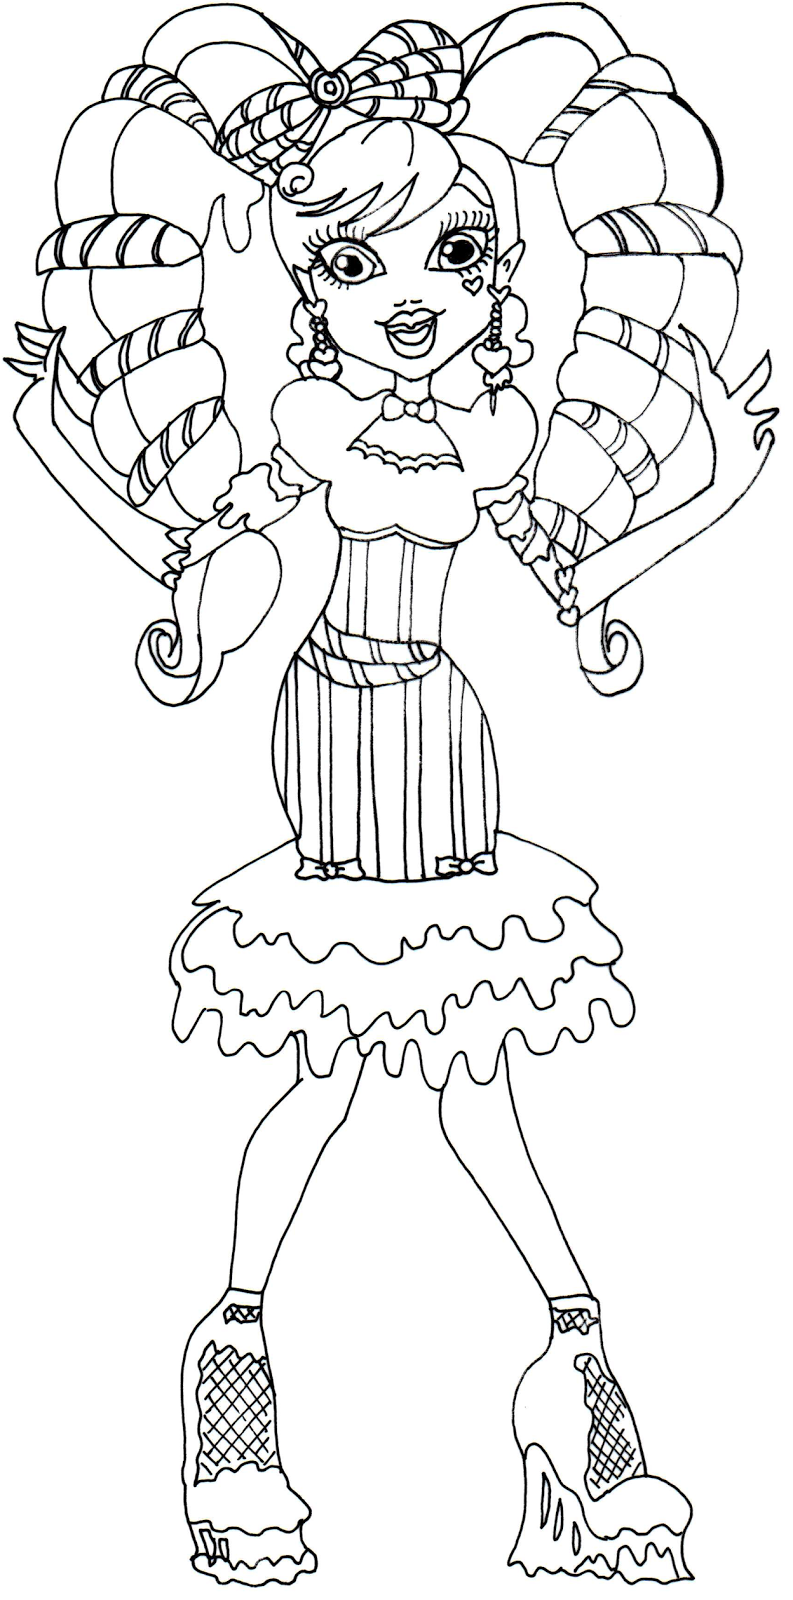 Coloring Pages Monster High Fright On Pictures to Pin on Pinterest